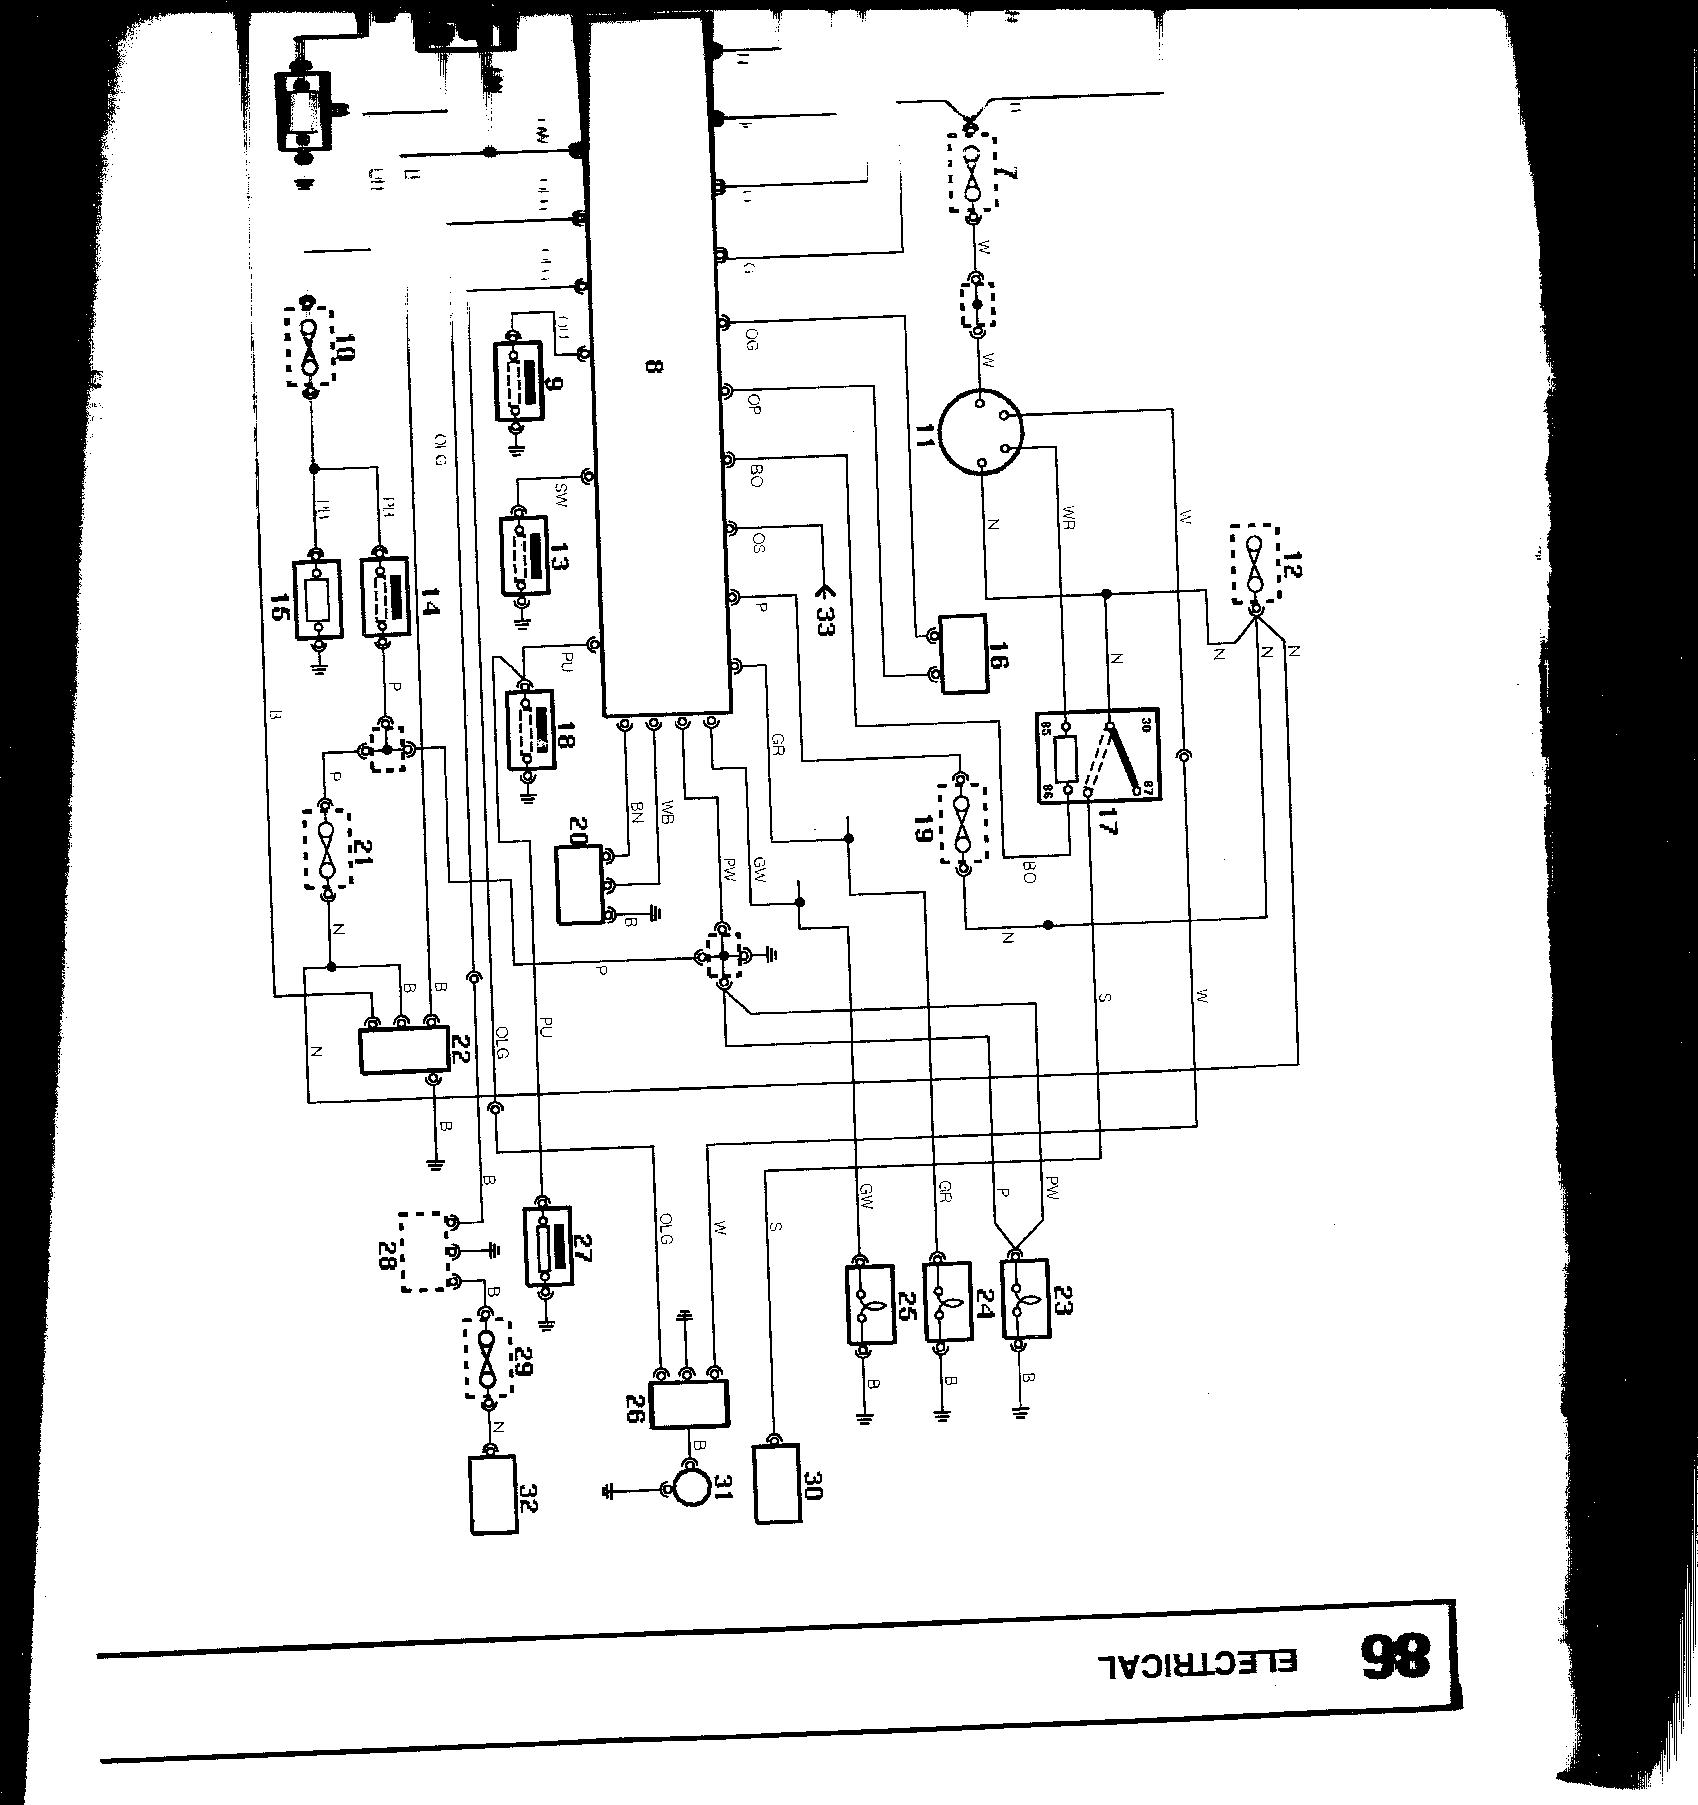 Land Rover Amr 6431 Wiring Diagram Trusted Computer Free Motoring Defender Forum Lr4x4 The Plymouth Diagrams